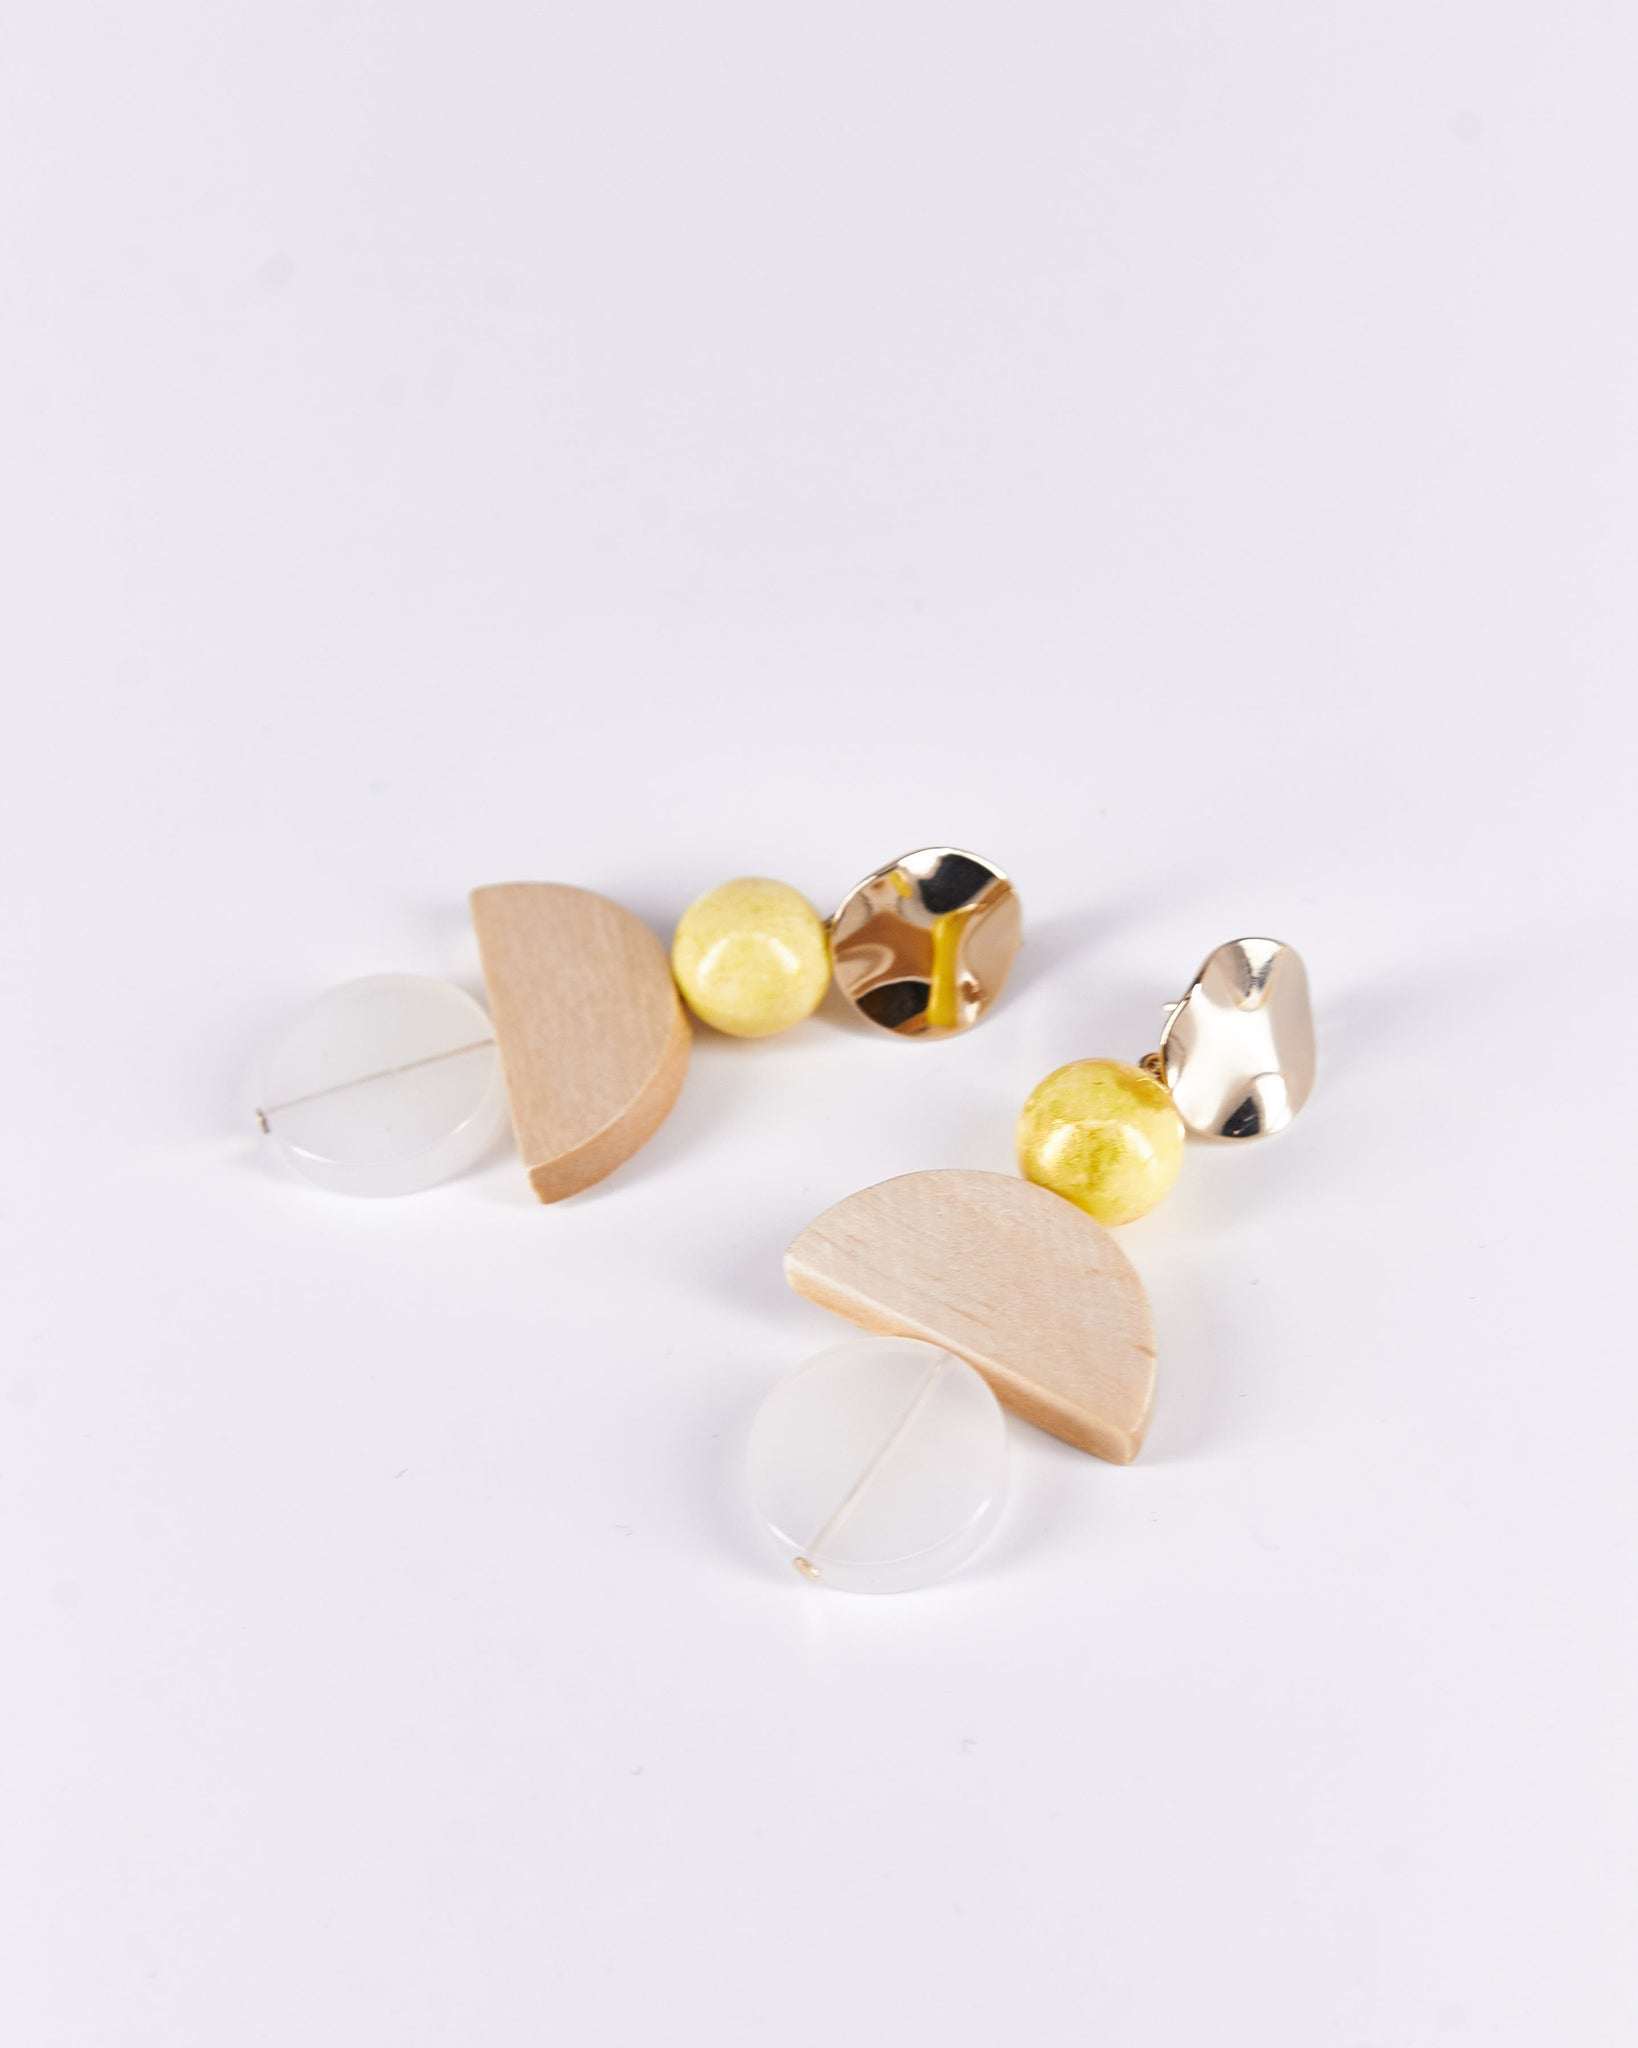 Earrings-Miel-ProjectBon-Acetate-Handmade-Localdesigners-Nuovum-Barcelona